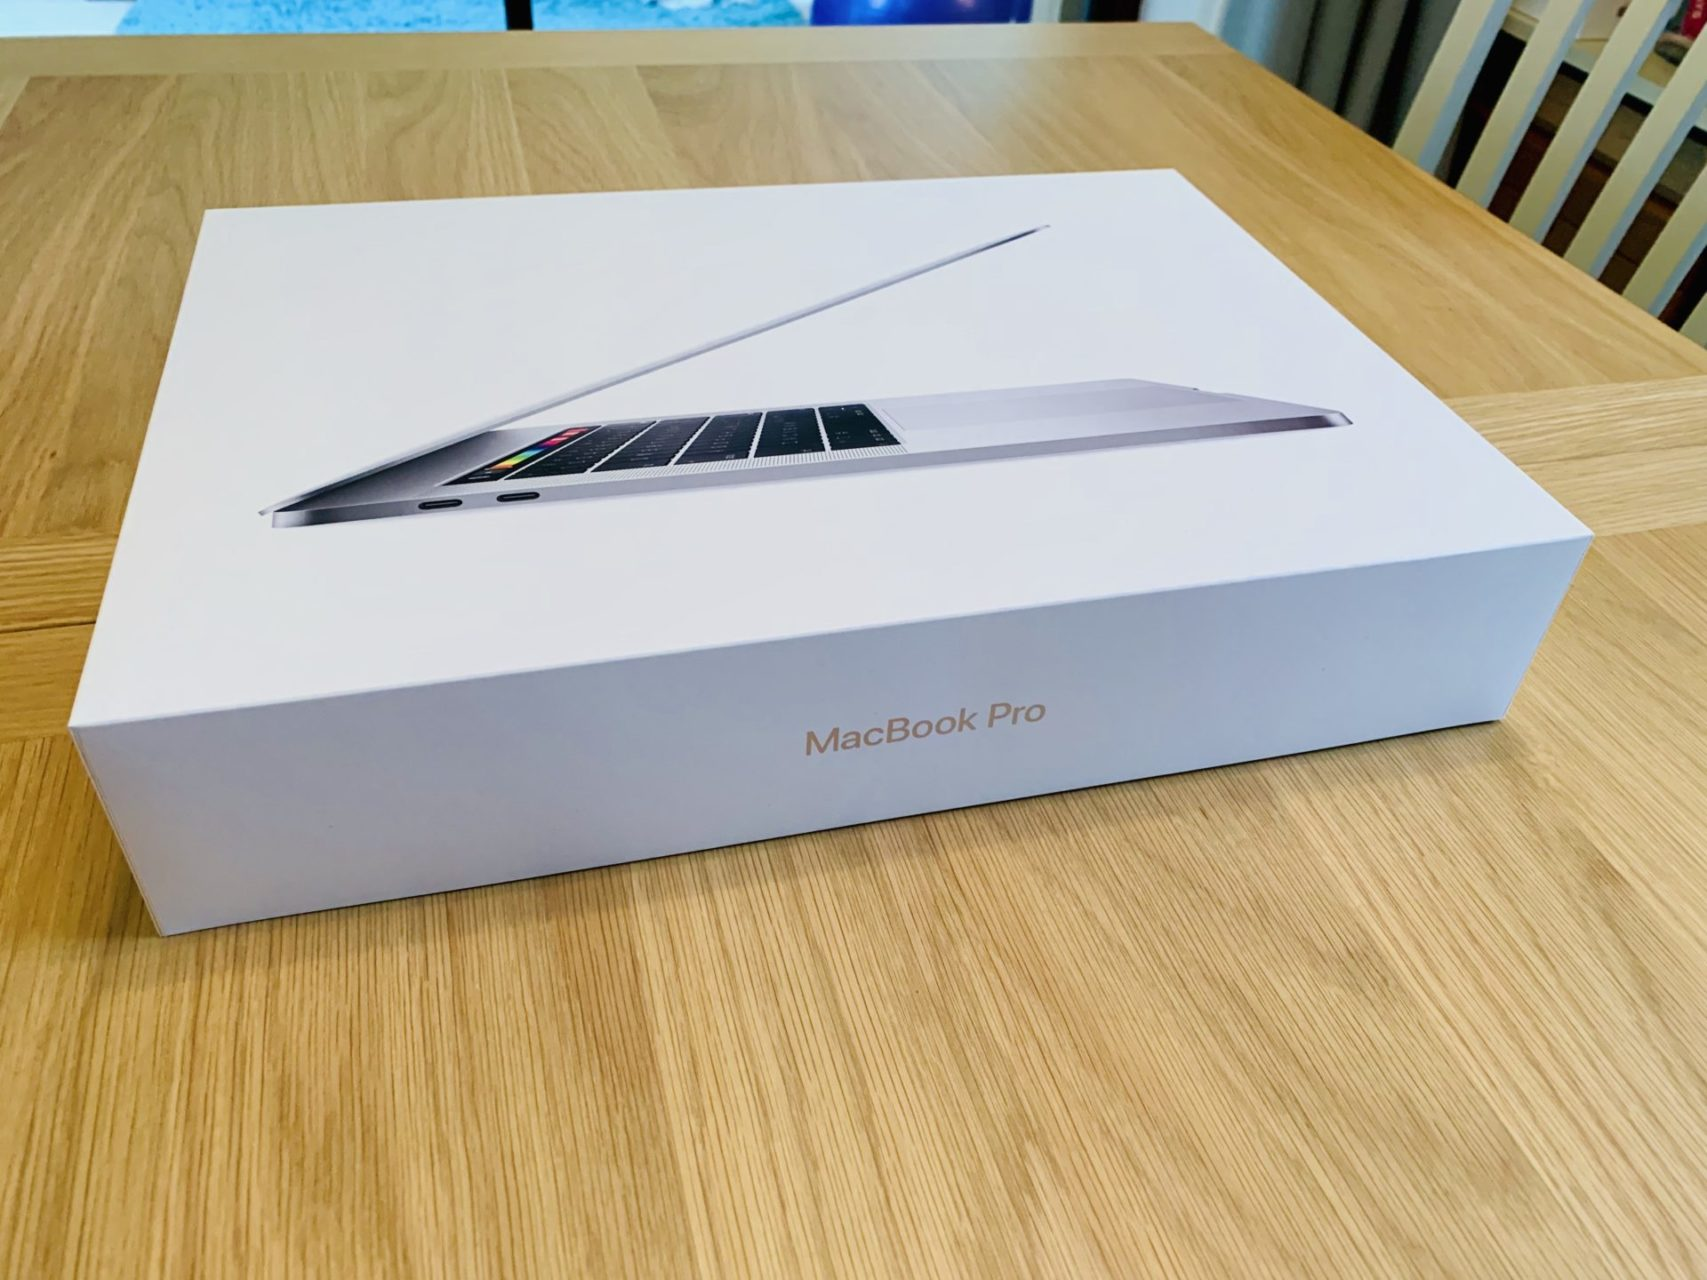 Apple MacBook Pro 15 inch box